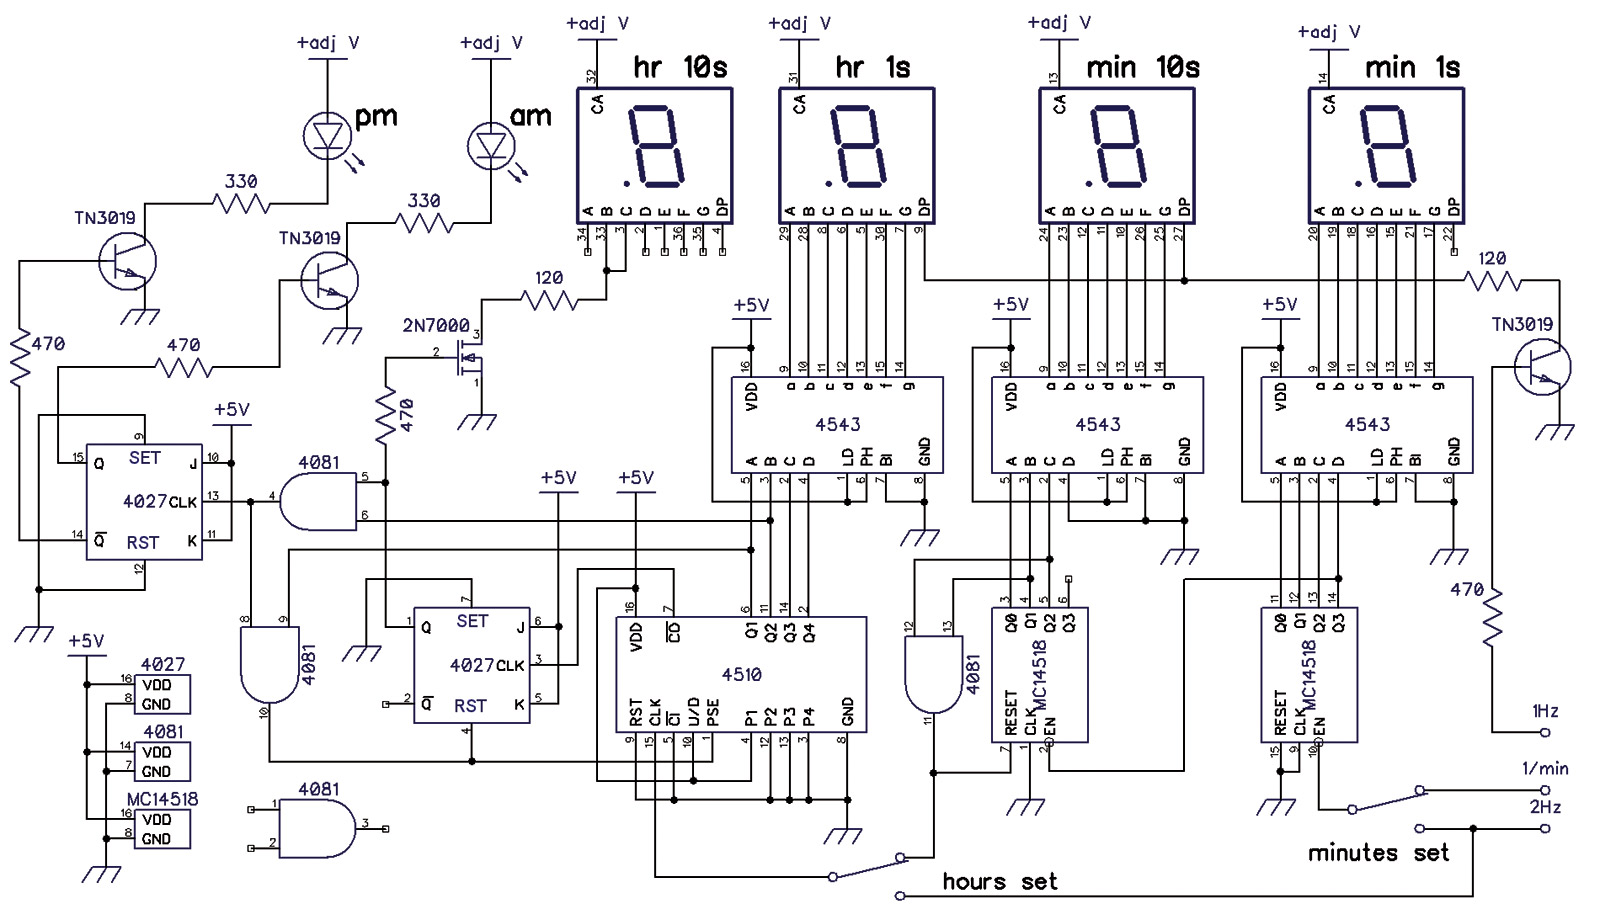 decade counter circuit diagram using 7490 36 volt club car motor wiring an old school digital clock nuts and volts magazine